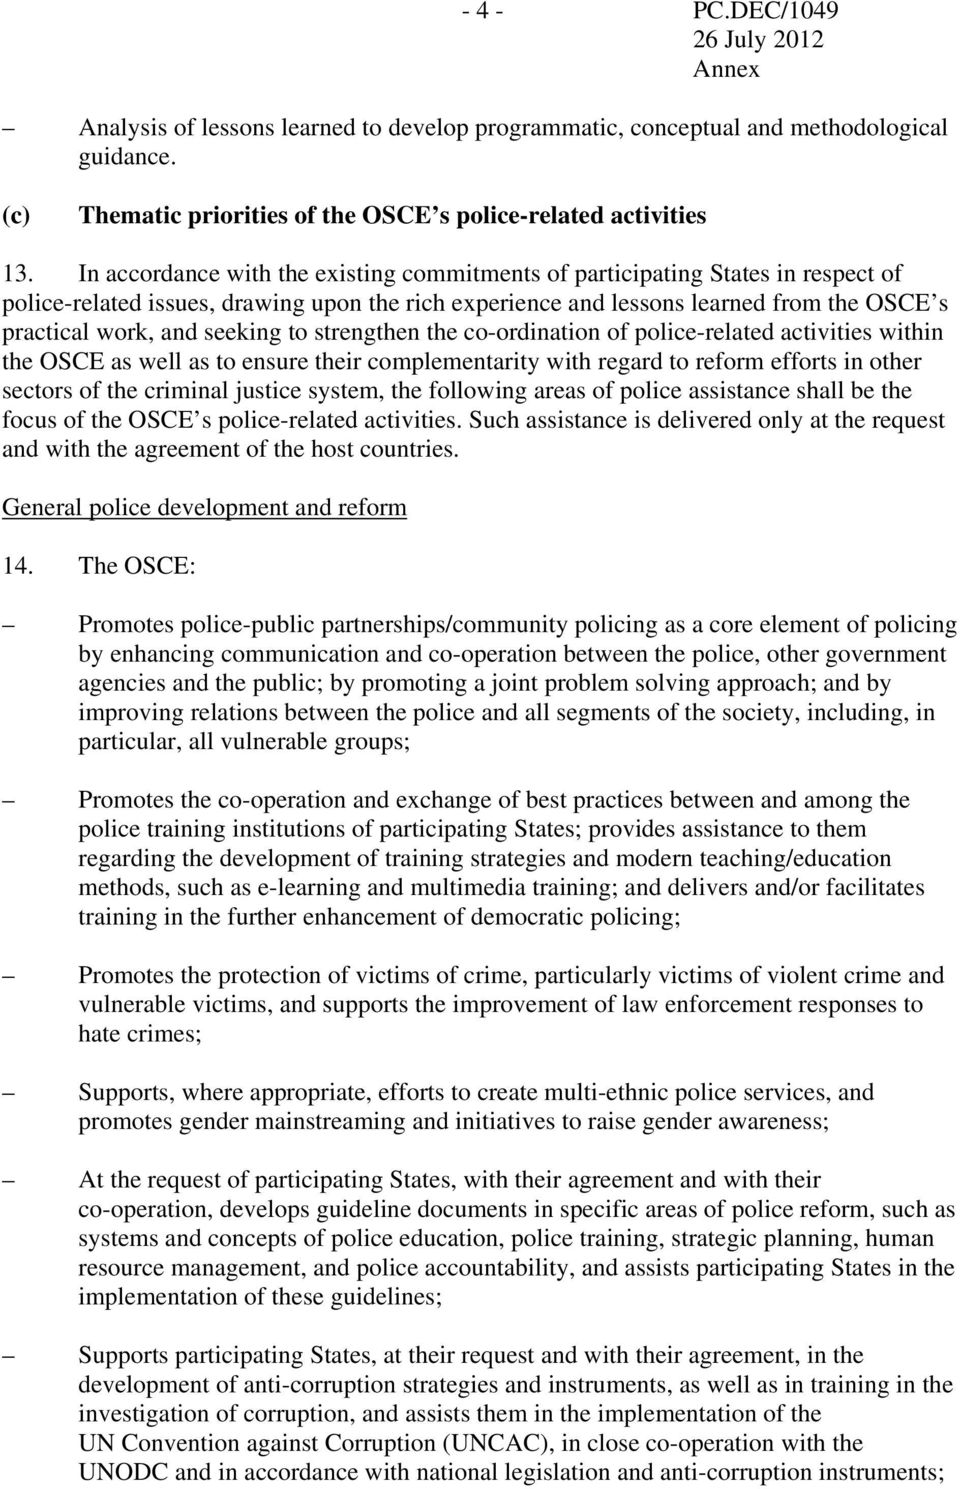 seeking to strengthen the co-ordination of police-related activities within the OSCE as well as to ensure their complementarity with regard to reform efforts in other sectors of the criminal justice